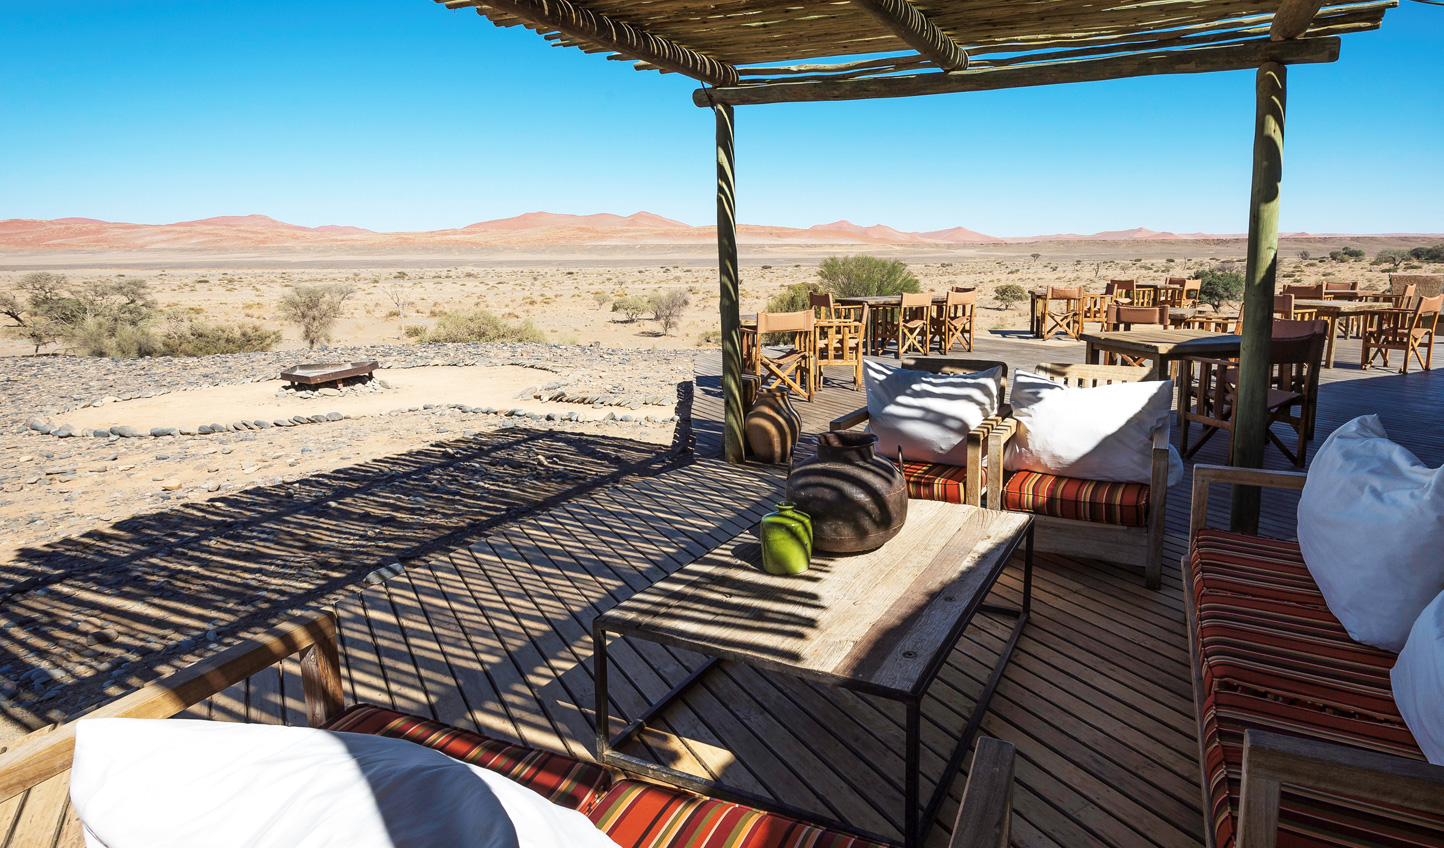 Explore the wonder of Namibia from Kulala Desert Lodge